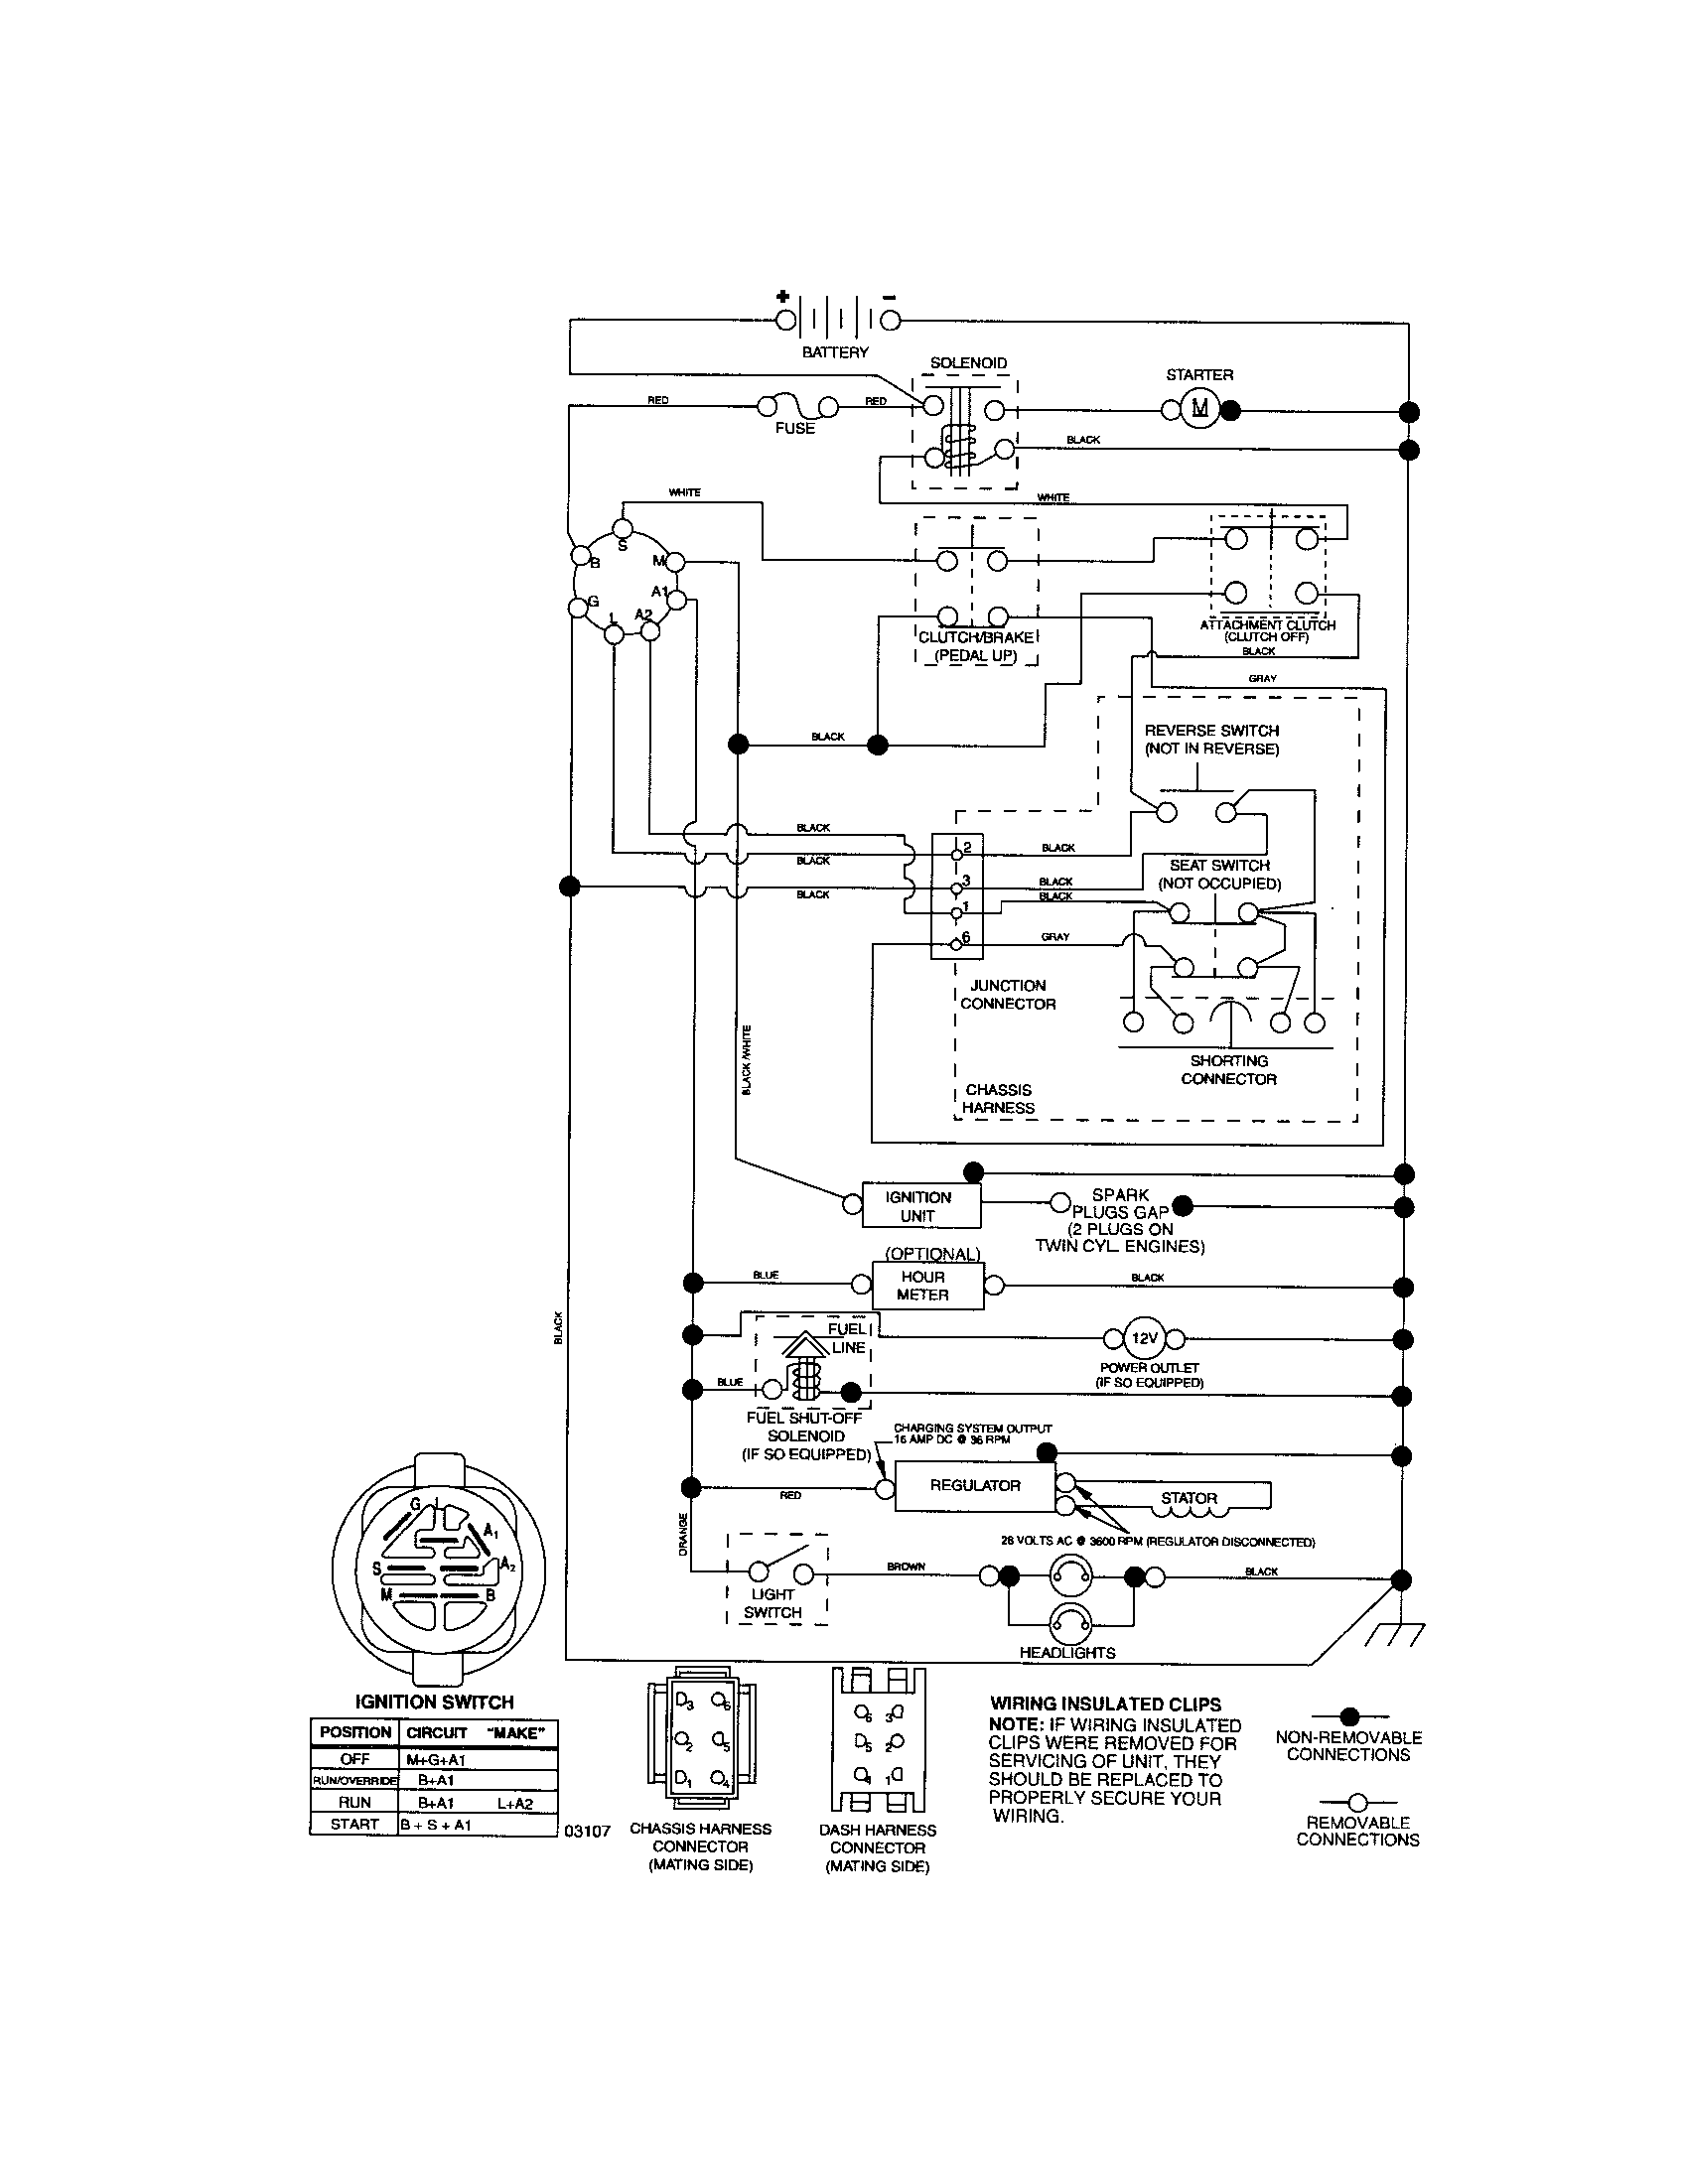 6af5f1447fd13c8443376822ddc1e105 craftsman riding mower electrical diagram wiring diagram craftsman ys 4500 wiring diagram at edmiracle.co